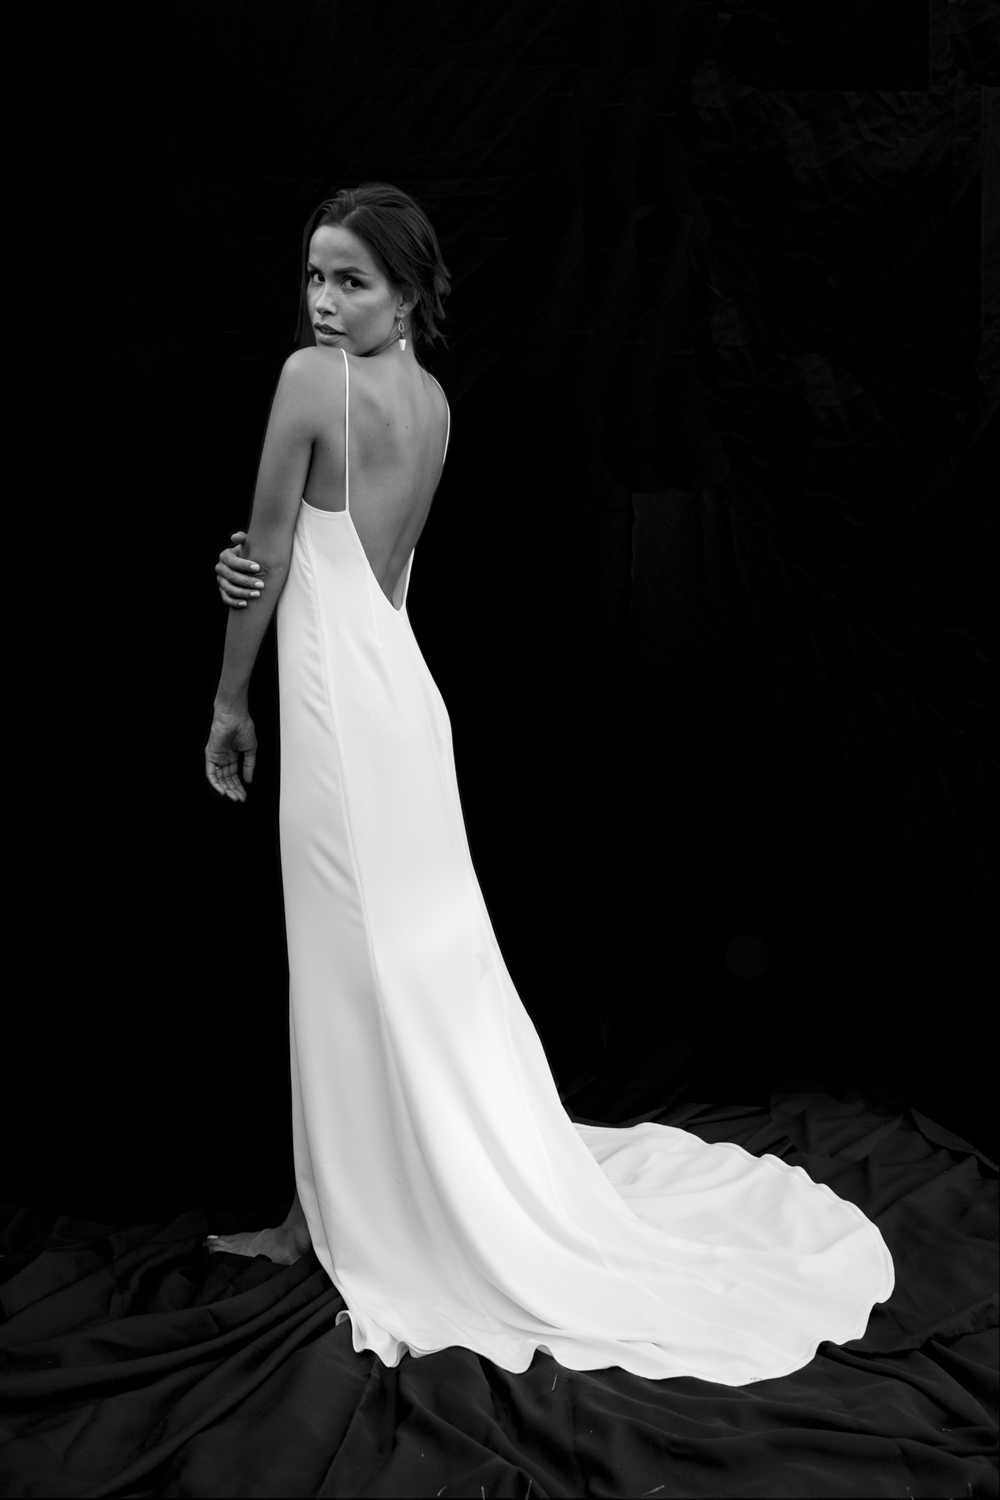 MARIA - Low back crepe slip-gown with an easy fit and buttery feel. Timeless and stunning, whether down the aisle or on the beach.